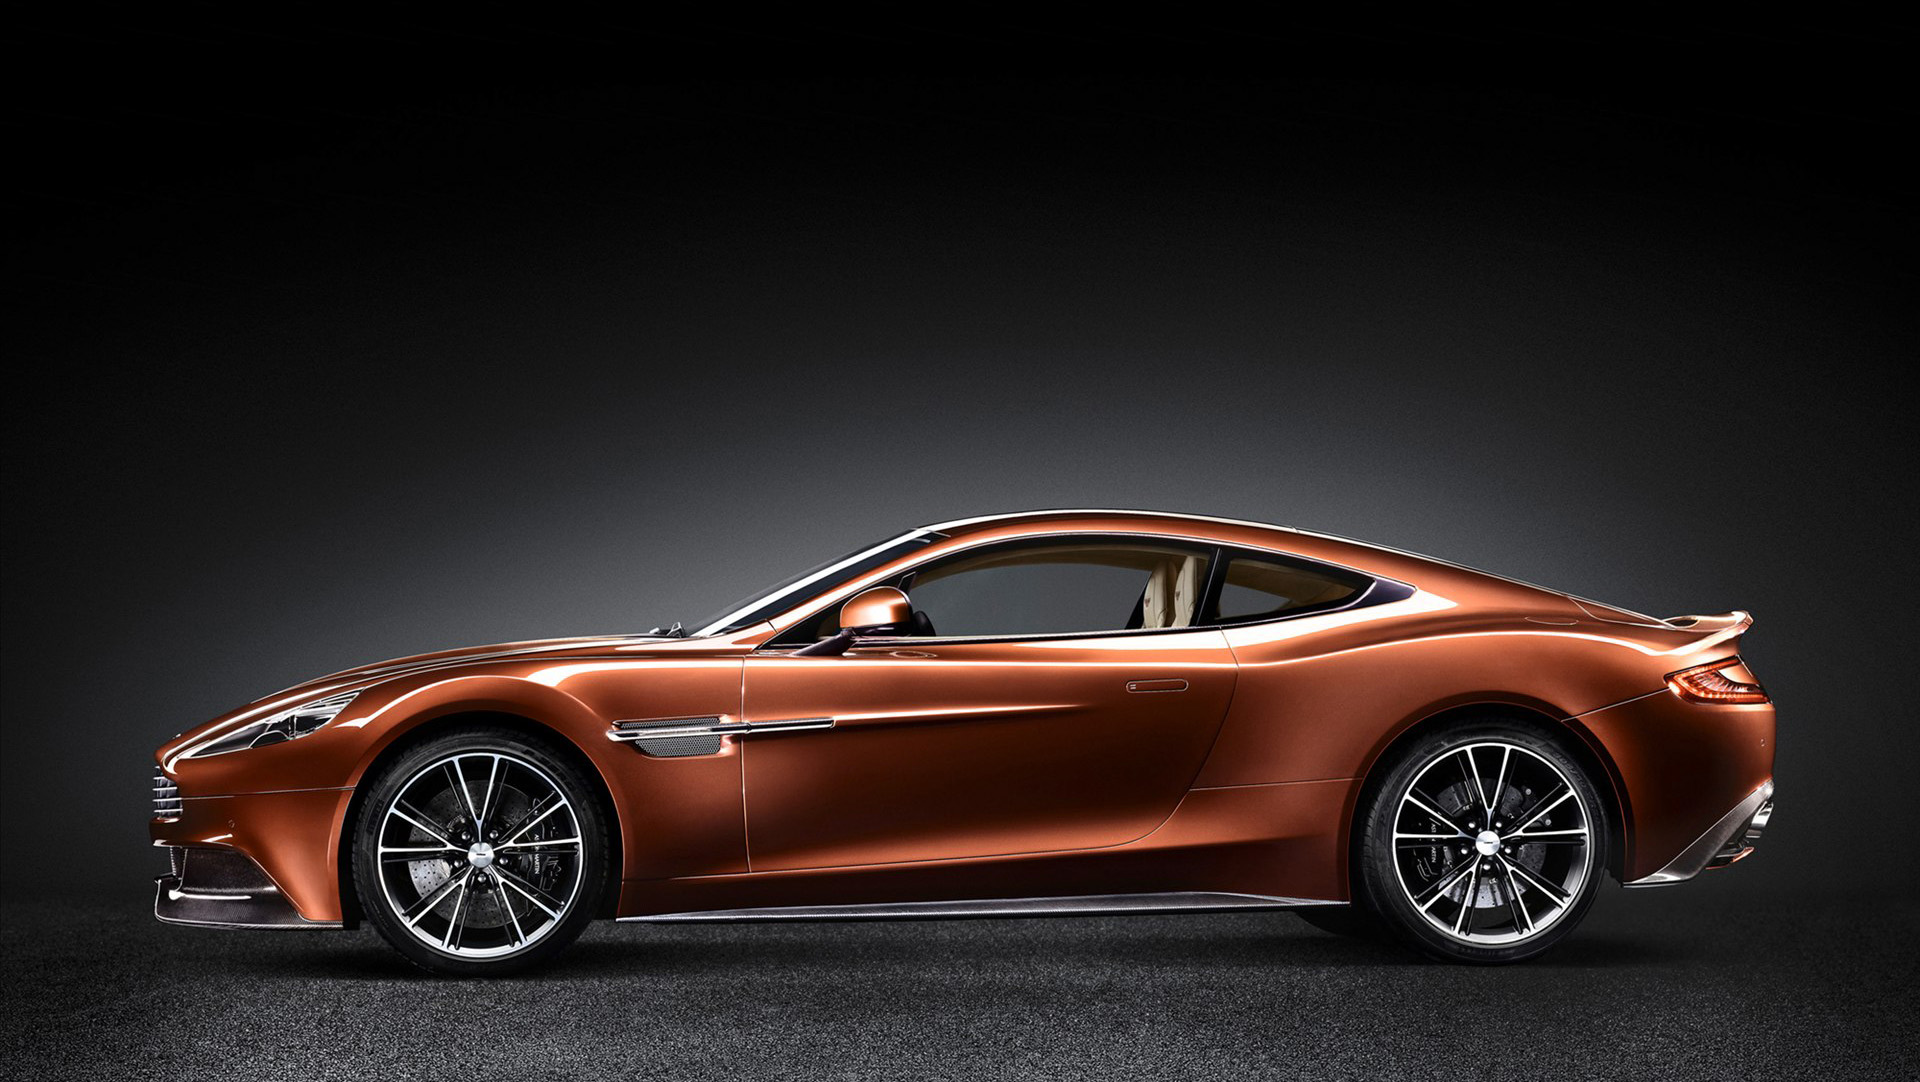 2013 aston martin vanquish brown safe research labs. Cars Review. Best American Auto & Cars Review